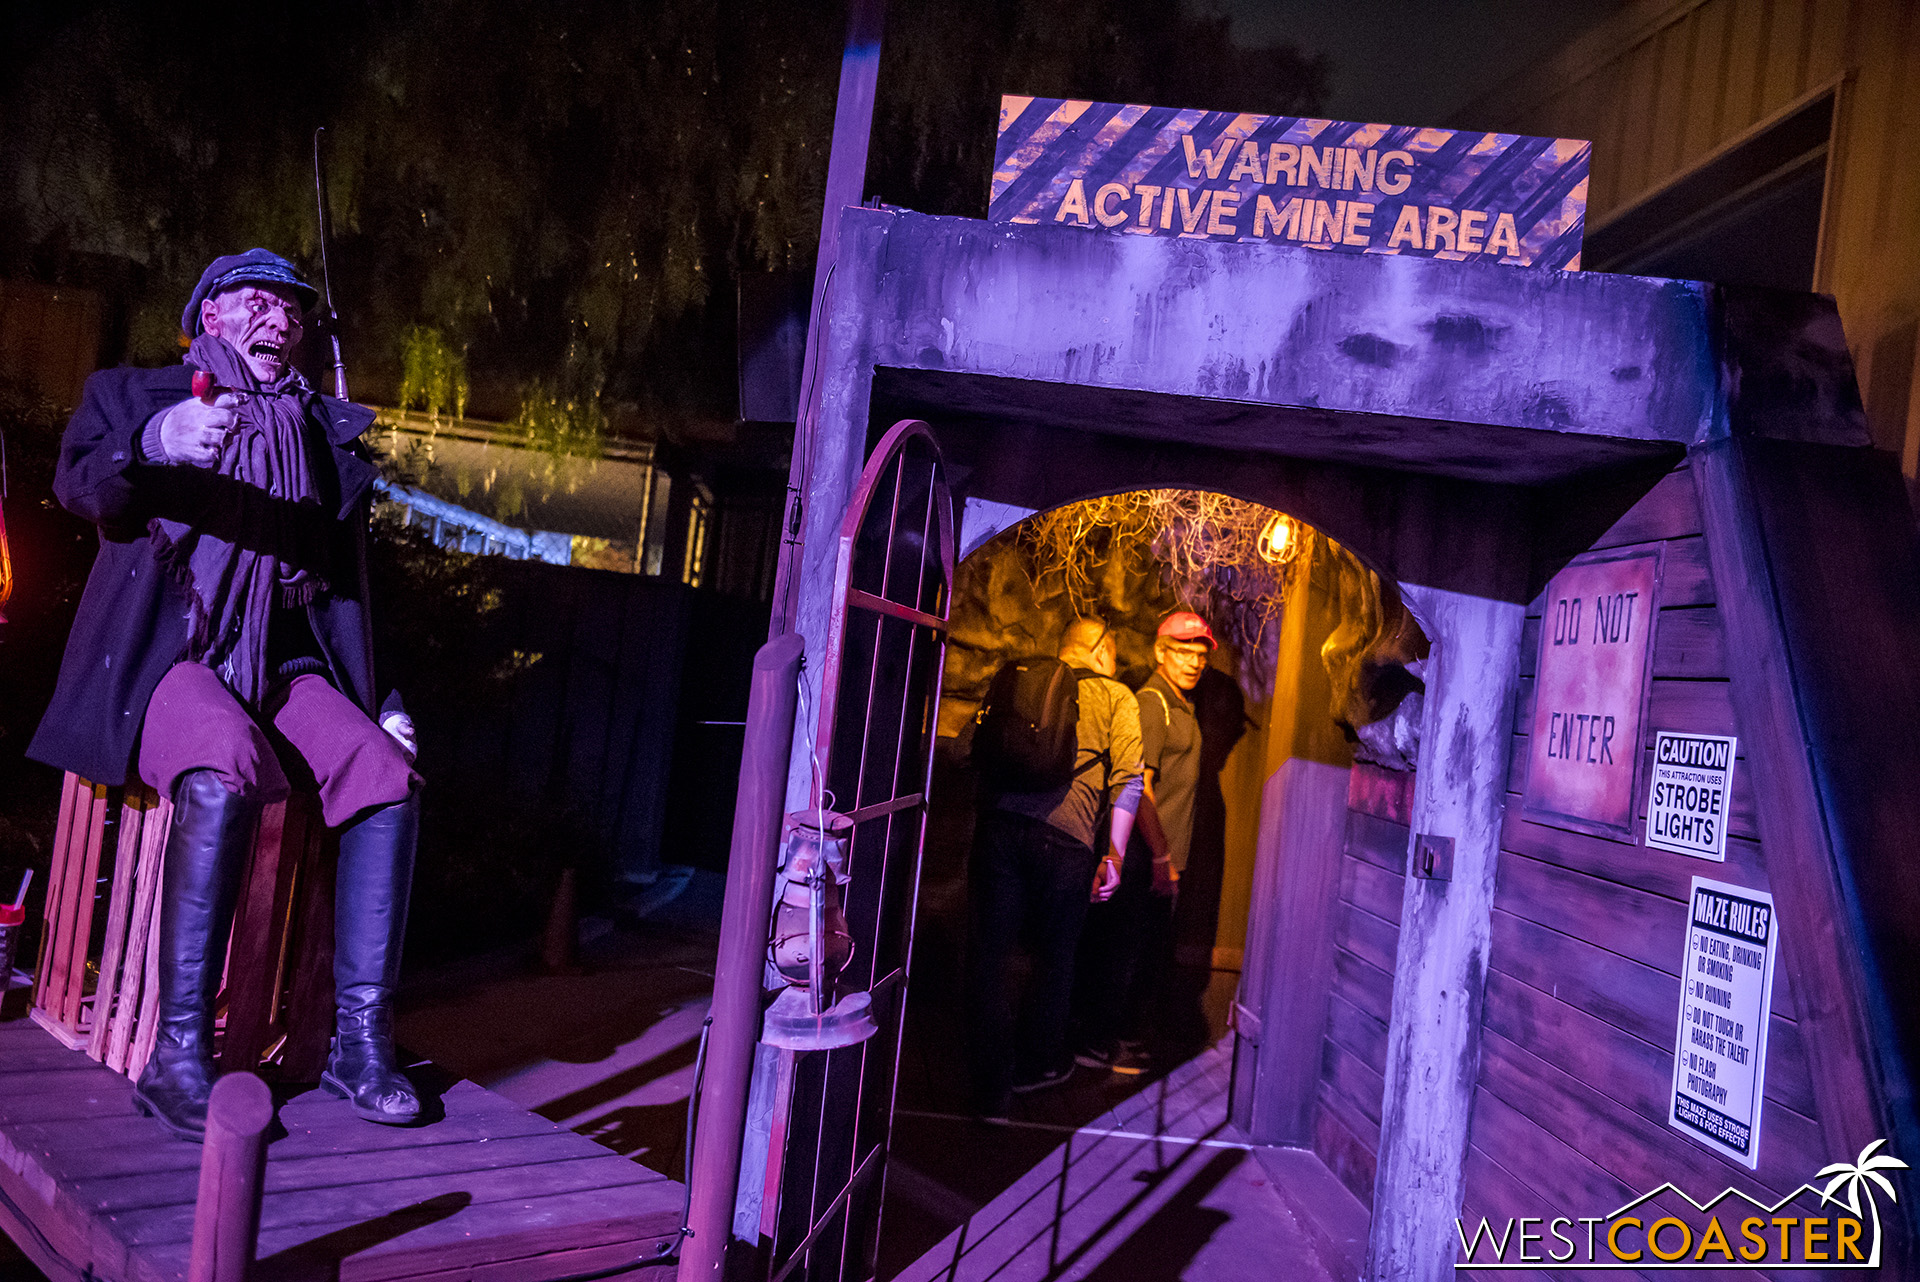 Entering The Depths. The captain animatronic did not function opening weekend.